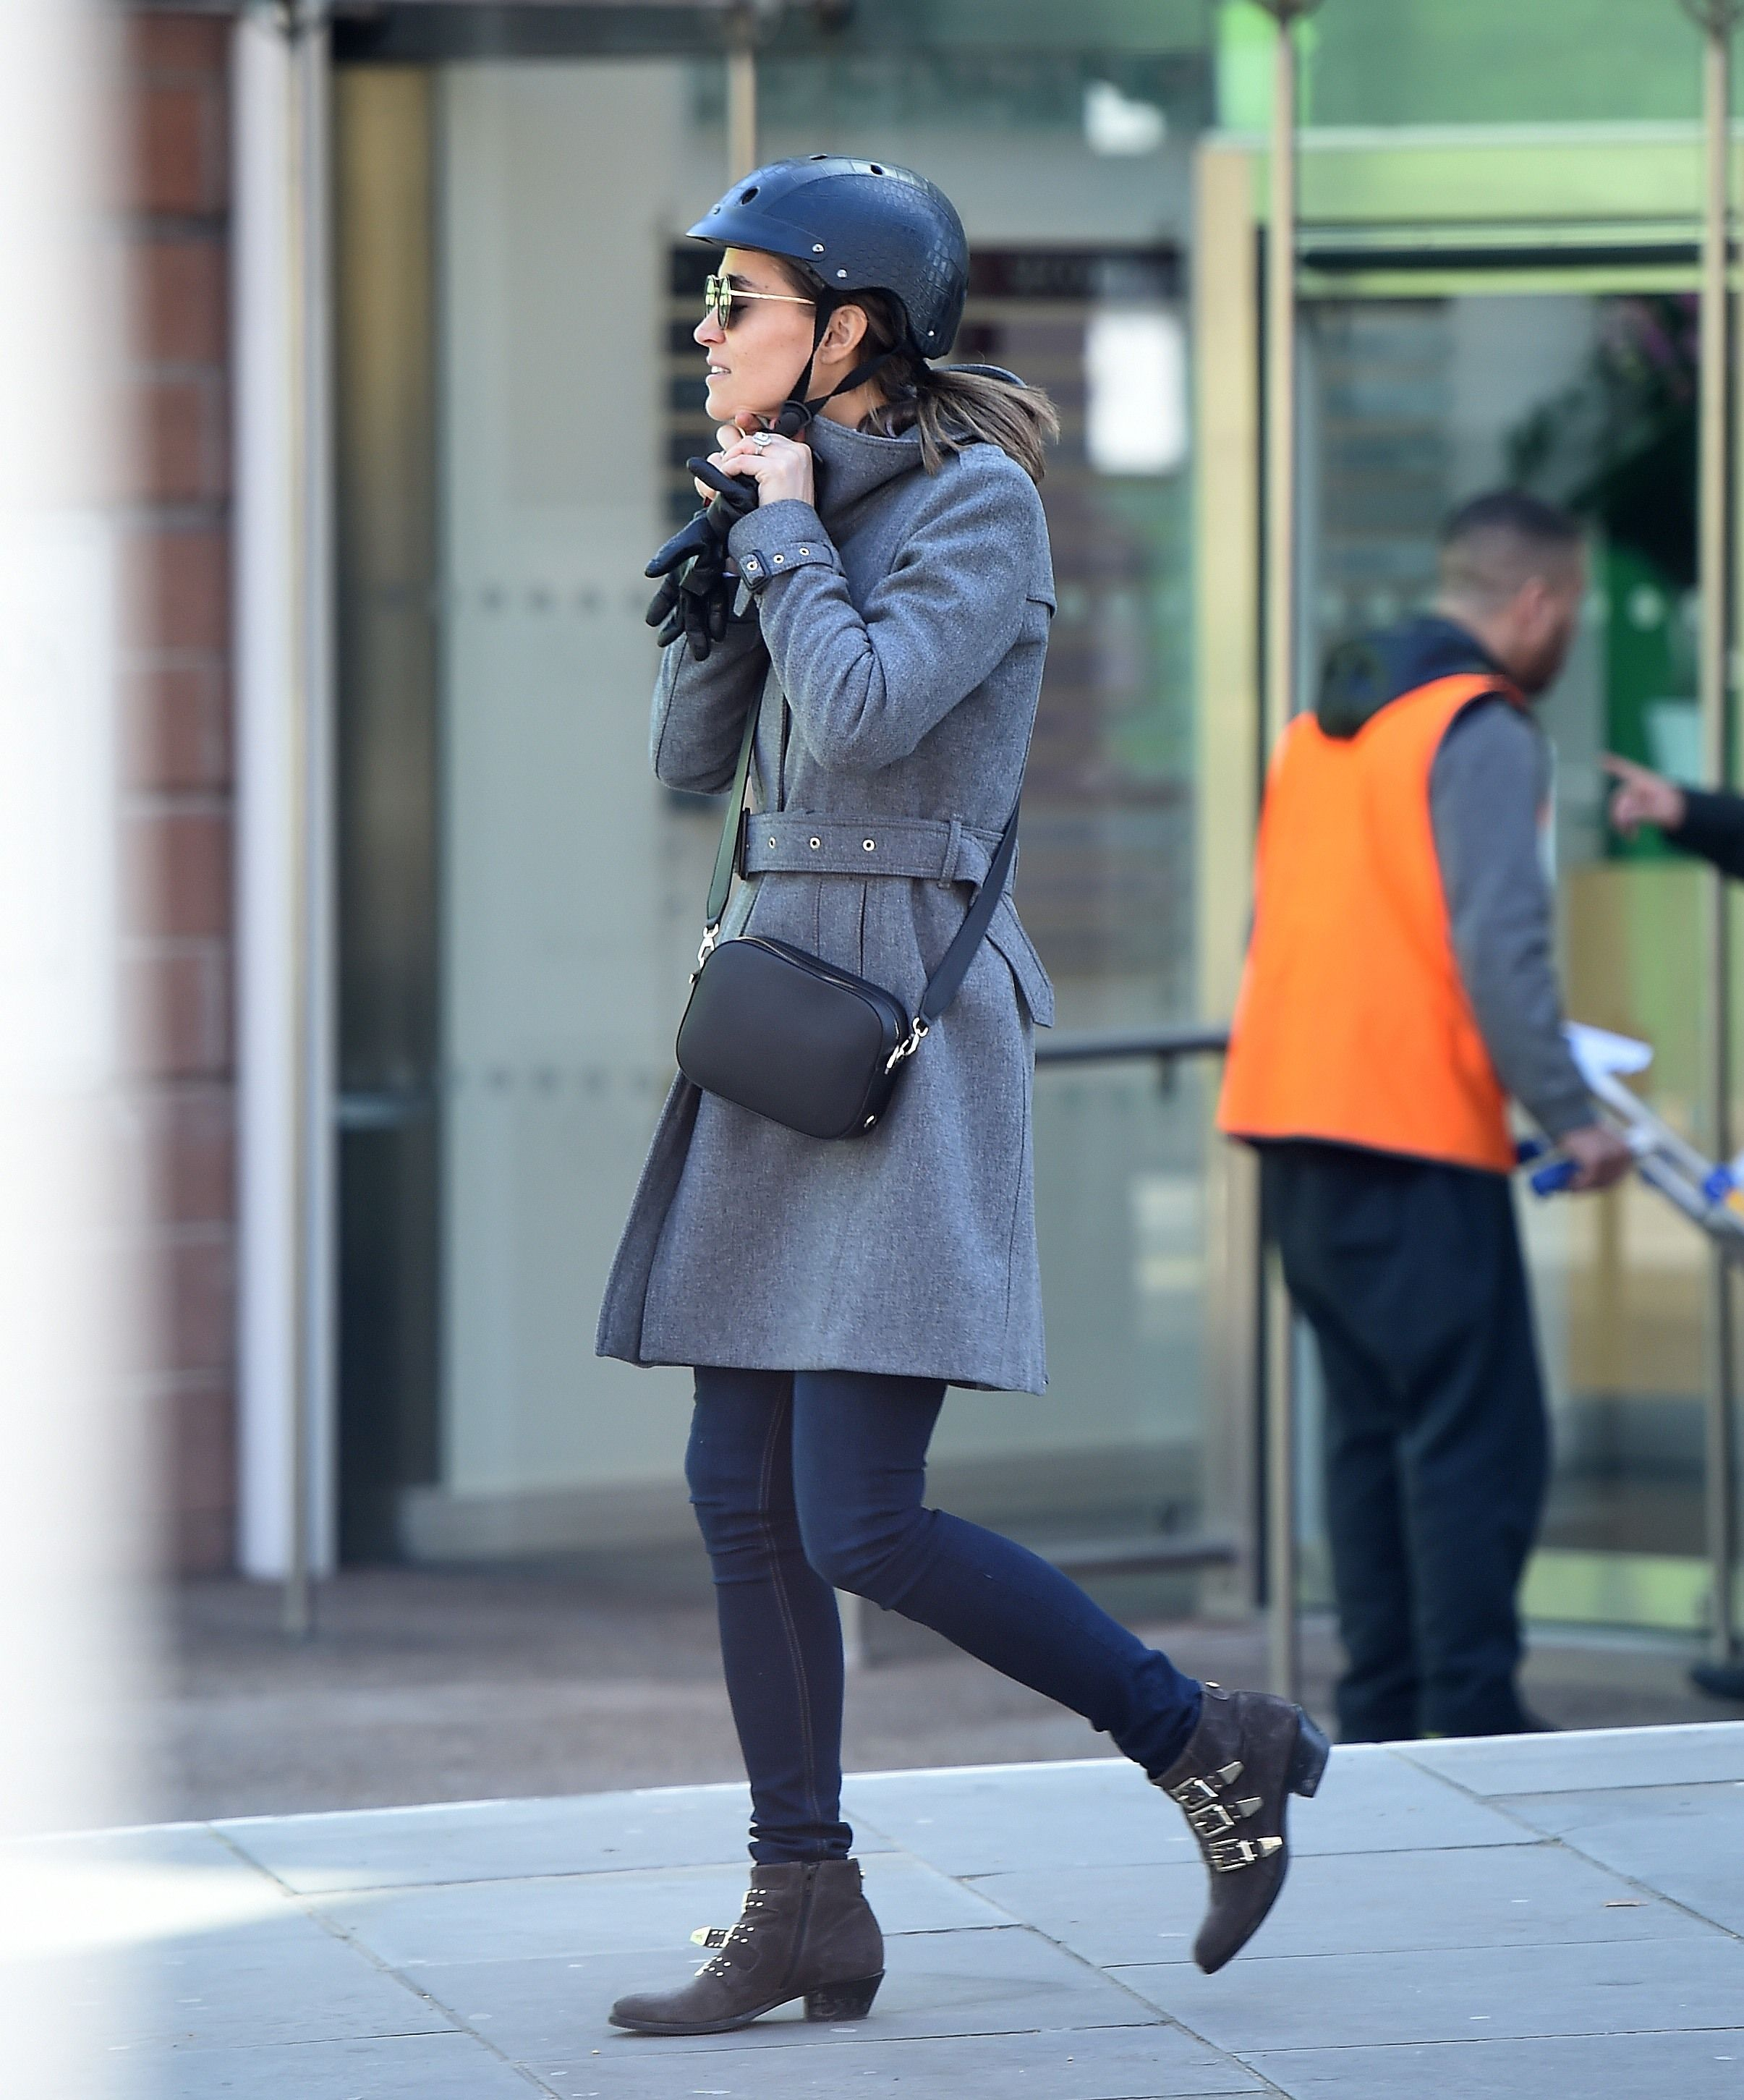 Pippa rode around the Chelsea neighborhood in London while wearing a gray belted trench coat, blue jeans, and a pair of Russell & Bromley boots . She kept all her belongings in her trusty Pop and Suki camera bag.